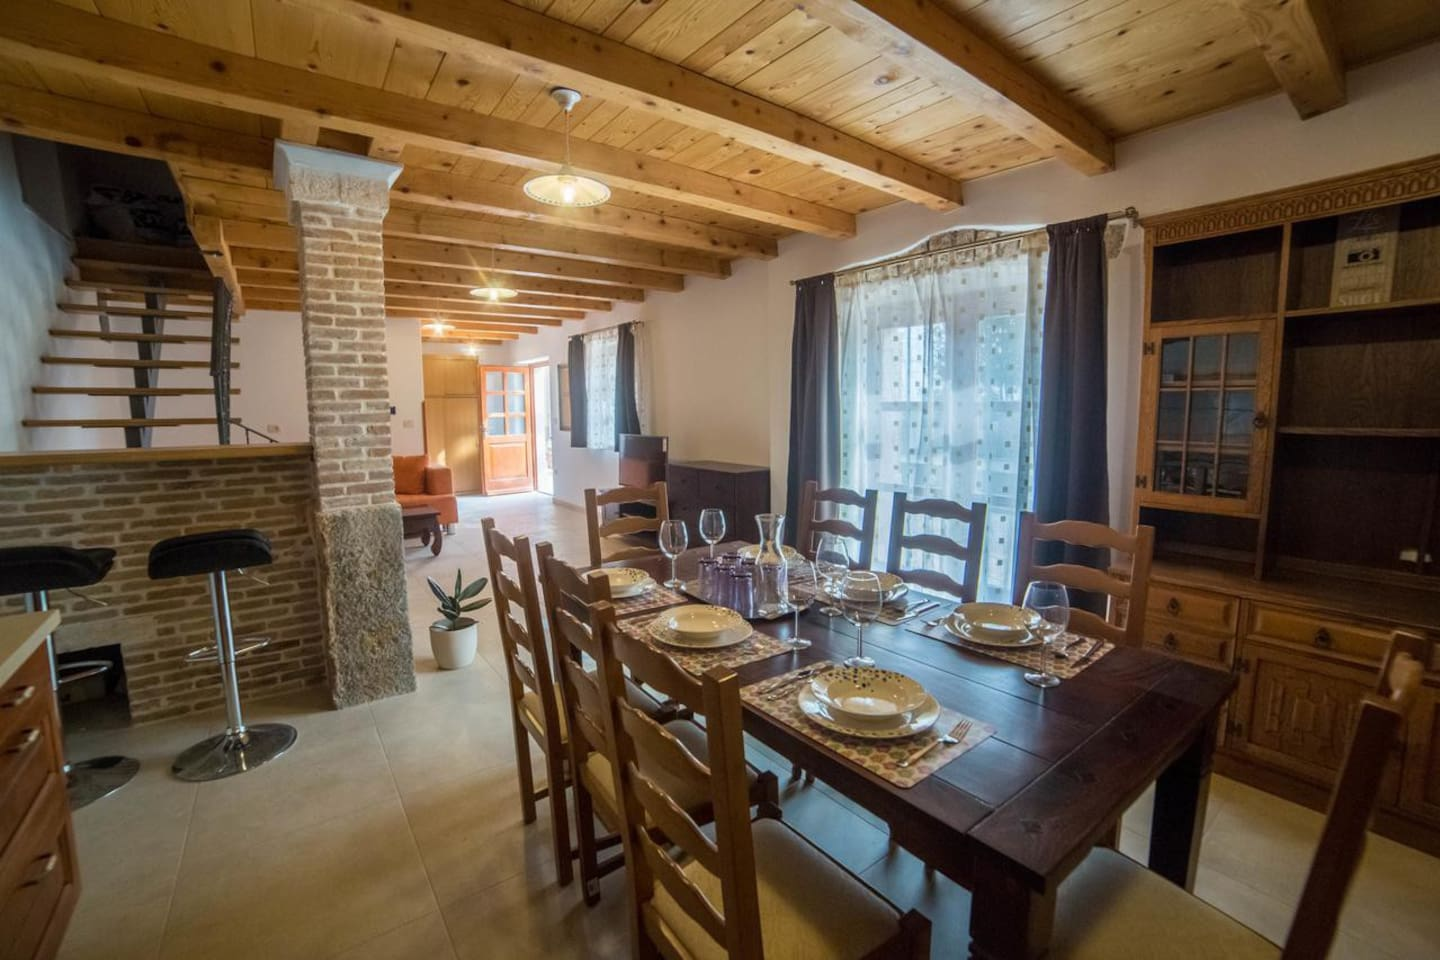 Villa Angela has a fully equipped kitchen, barbecue  and a dining table, a dining room, a living room and beautiful  garden.